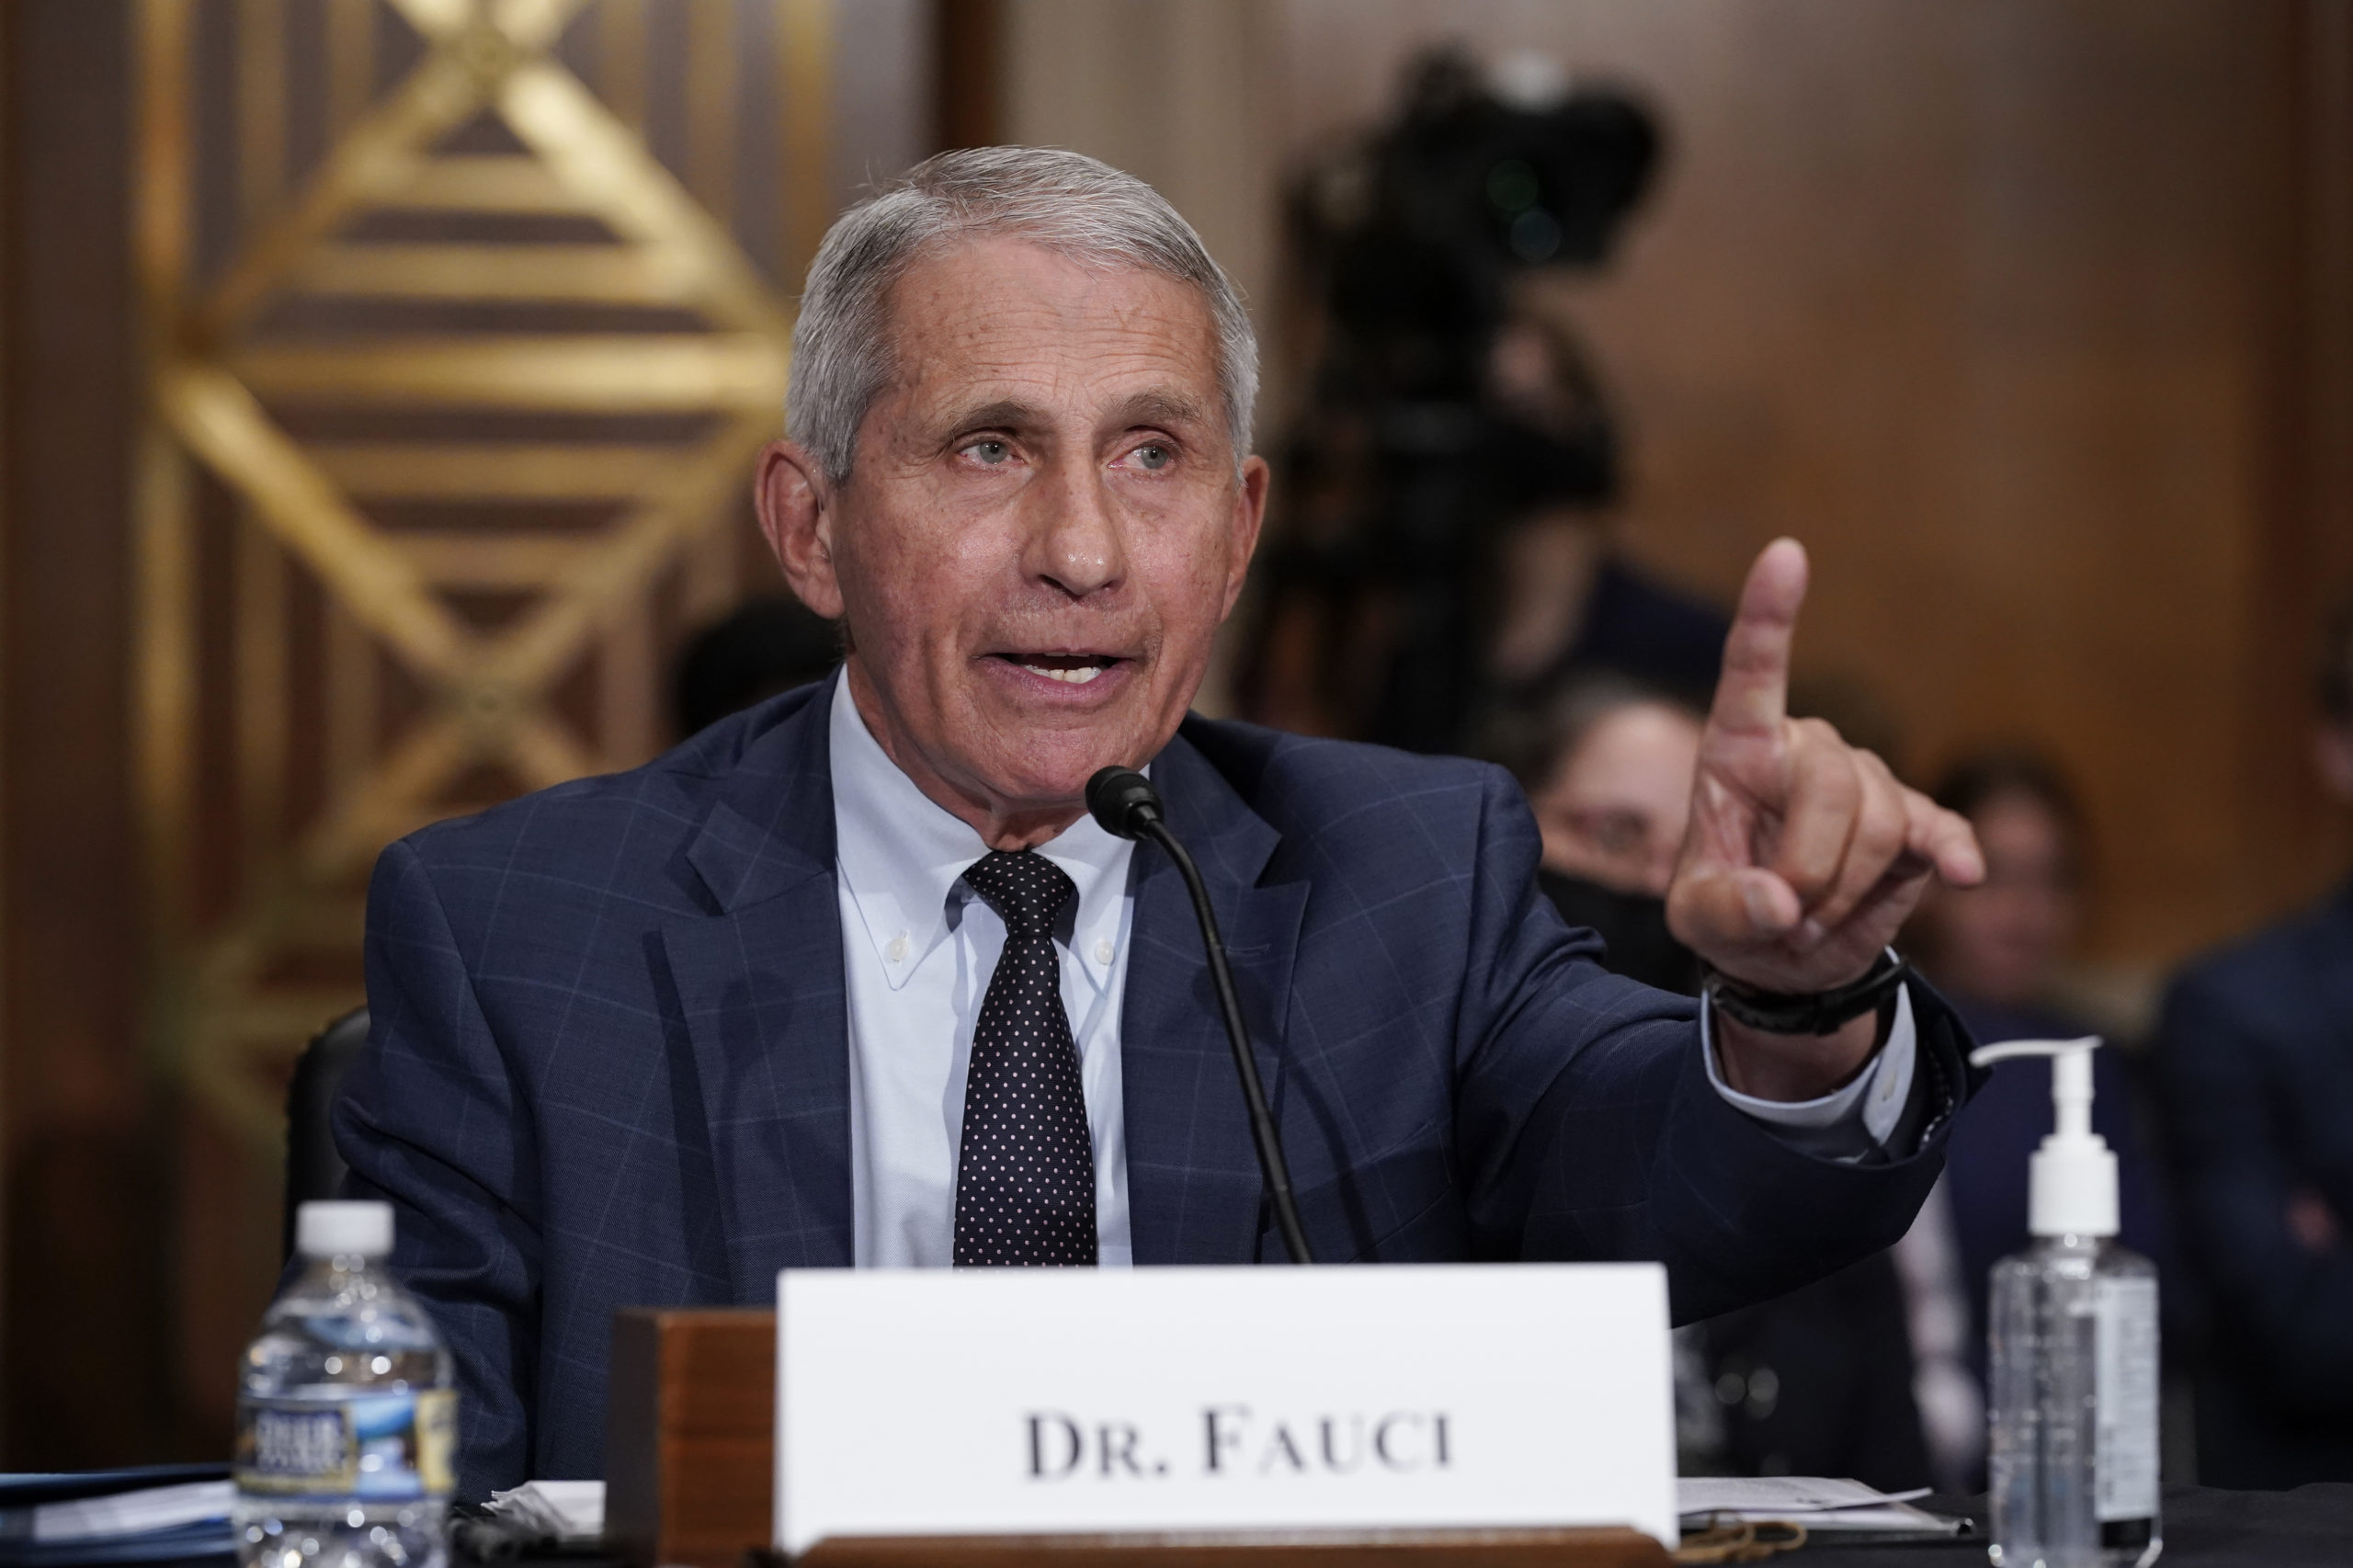 WASHINGTON, DC - JULY 20: Top infectious disease expert Dr. Anthony Fauci responds to accusations by Sen. Rand Paul, R-Ky., as he testifies before the Senate Health, Education, Labor, and Pensions Committee, July 20, 2021 on Capitol Hill in Washington, DC. Cases of COVID-19 have tripled over the past three weeks, and hospitalizations and deaths are rising among unvaccinated people. (Photo by J. Scott Applewhite-Pool/Getty Images)